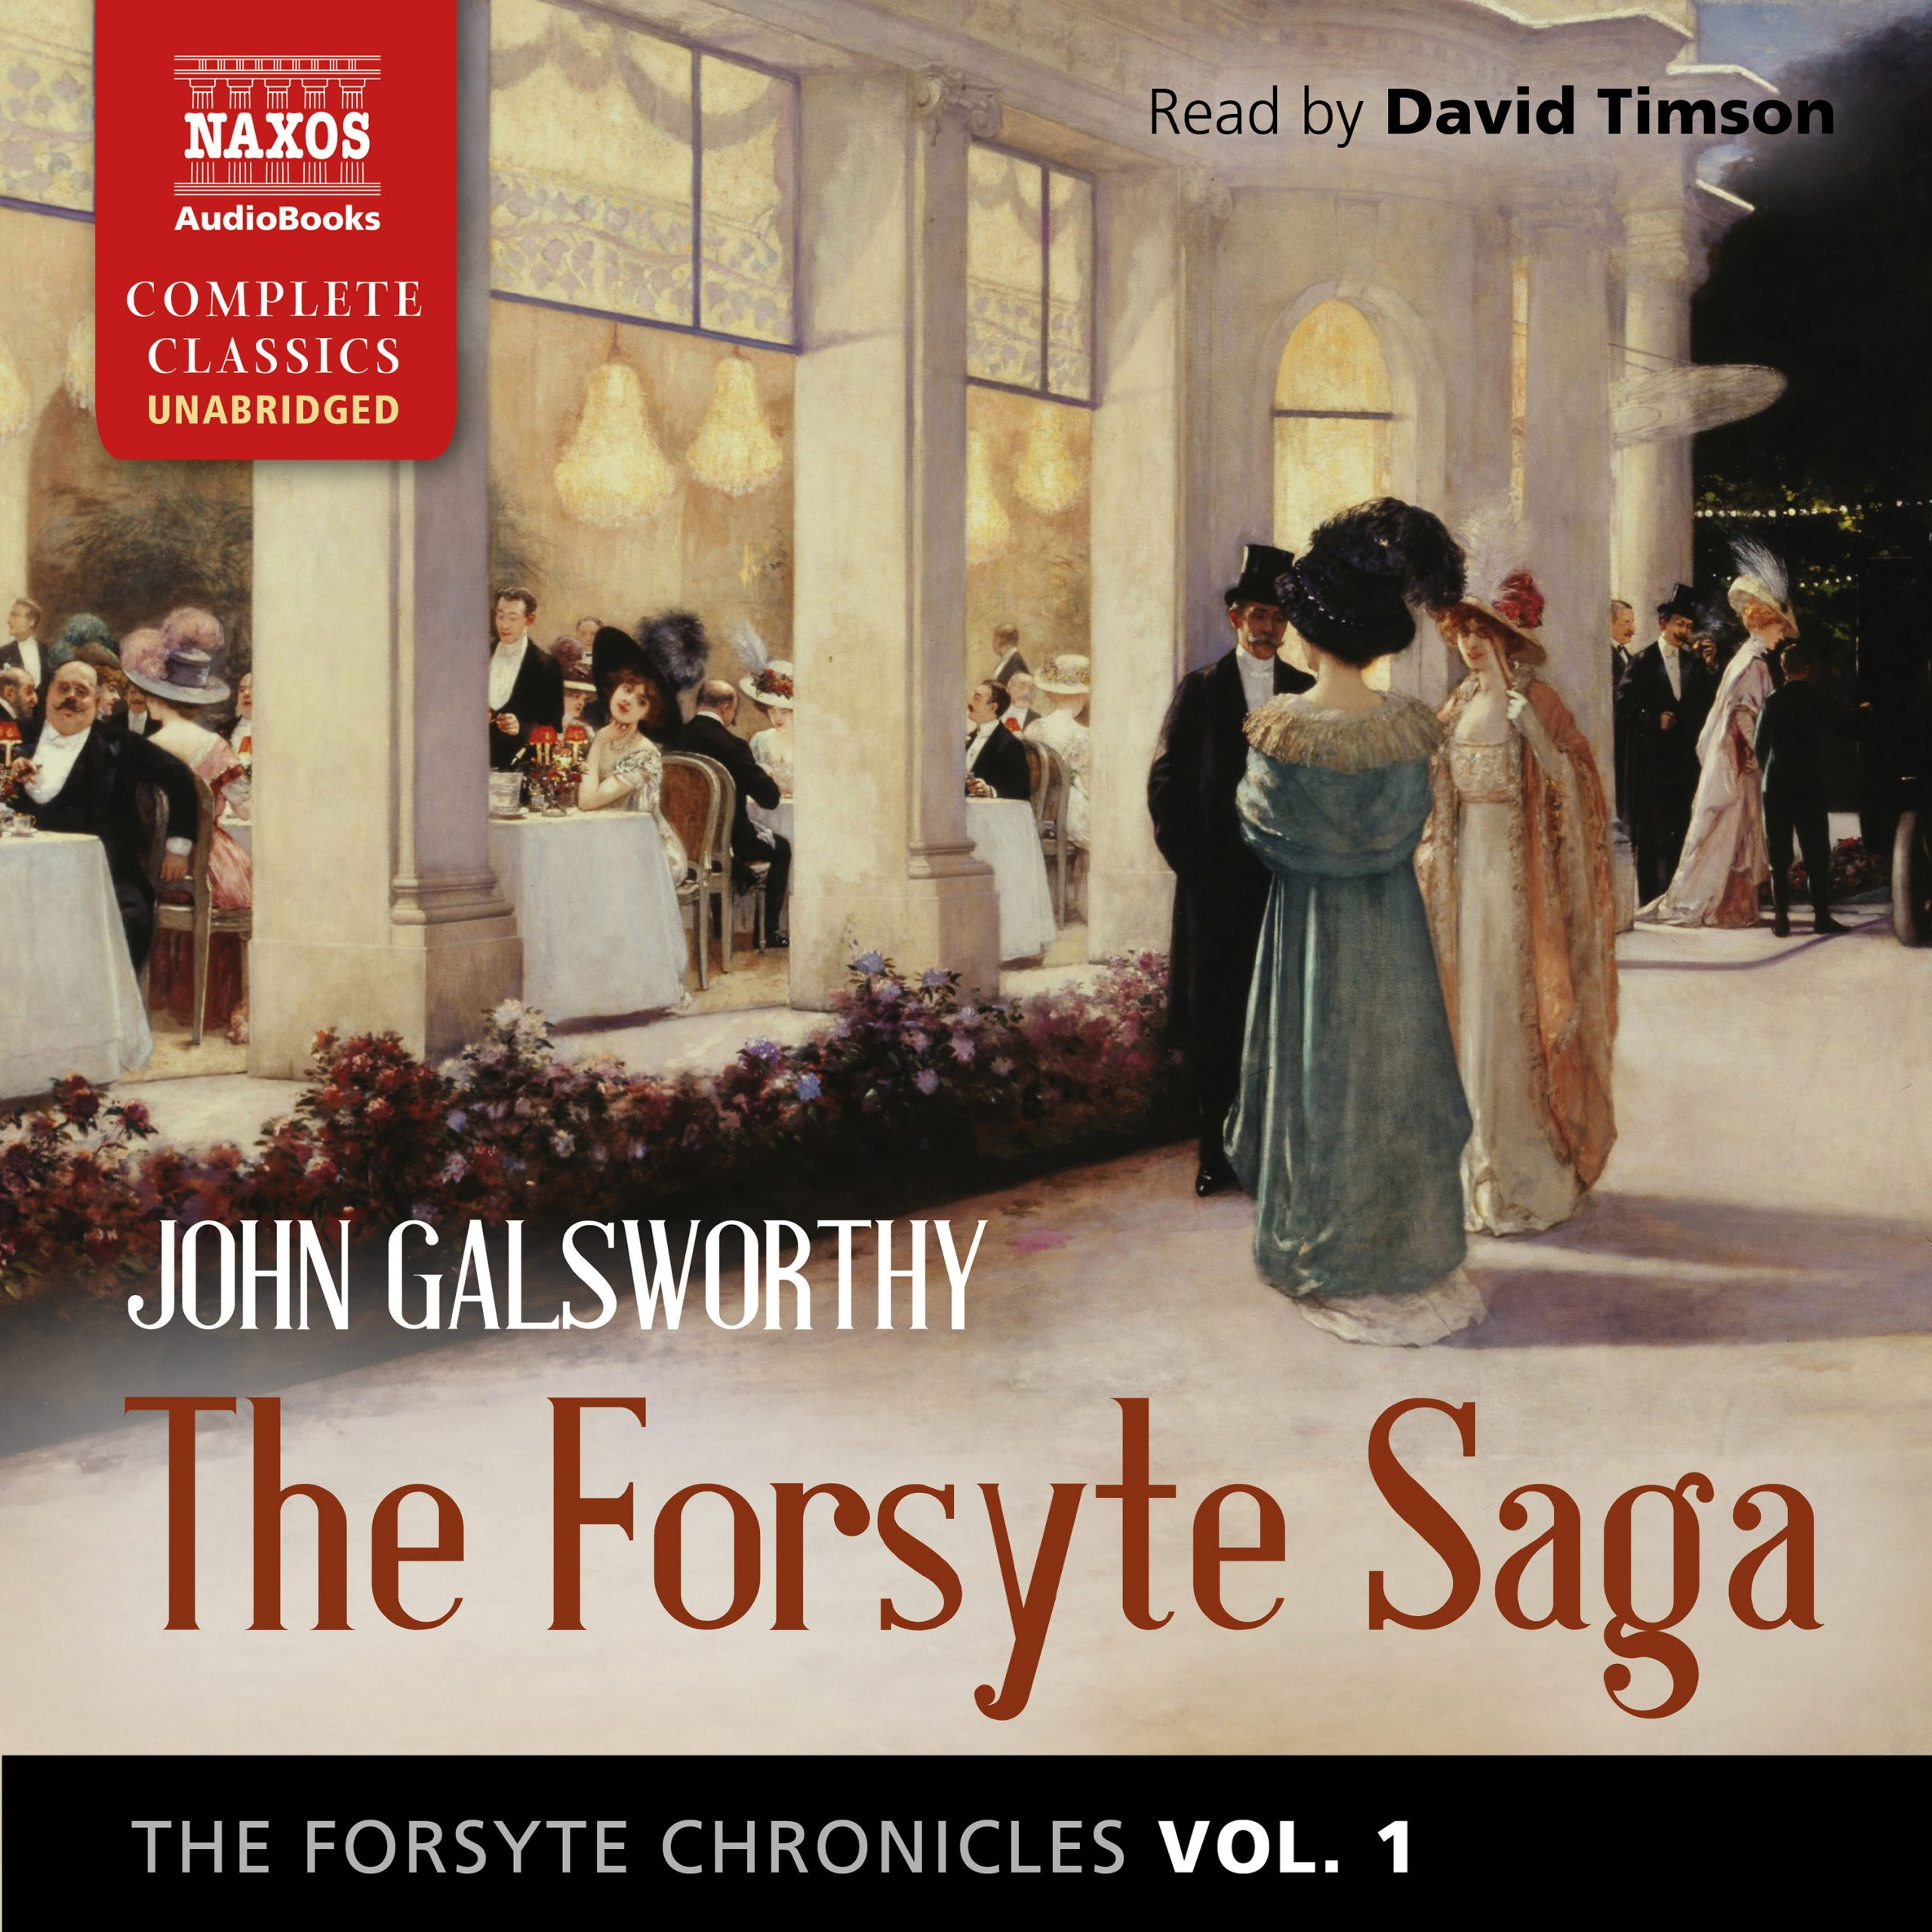 The Forsyte Chronicles, Vol. 1: The Forsyte Saga (unabridged)